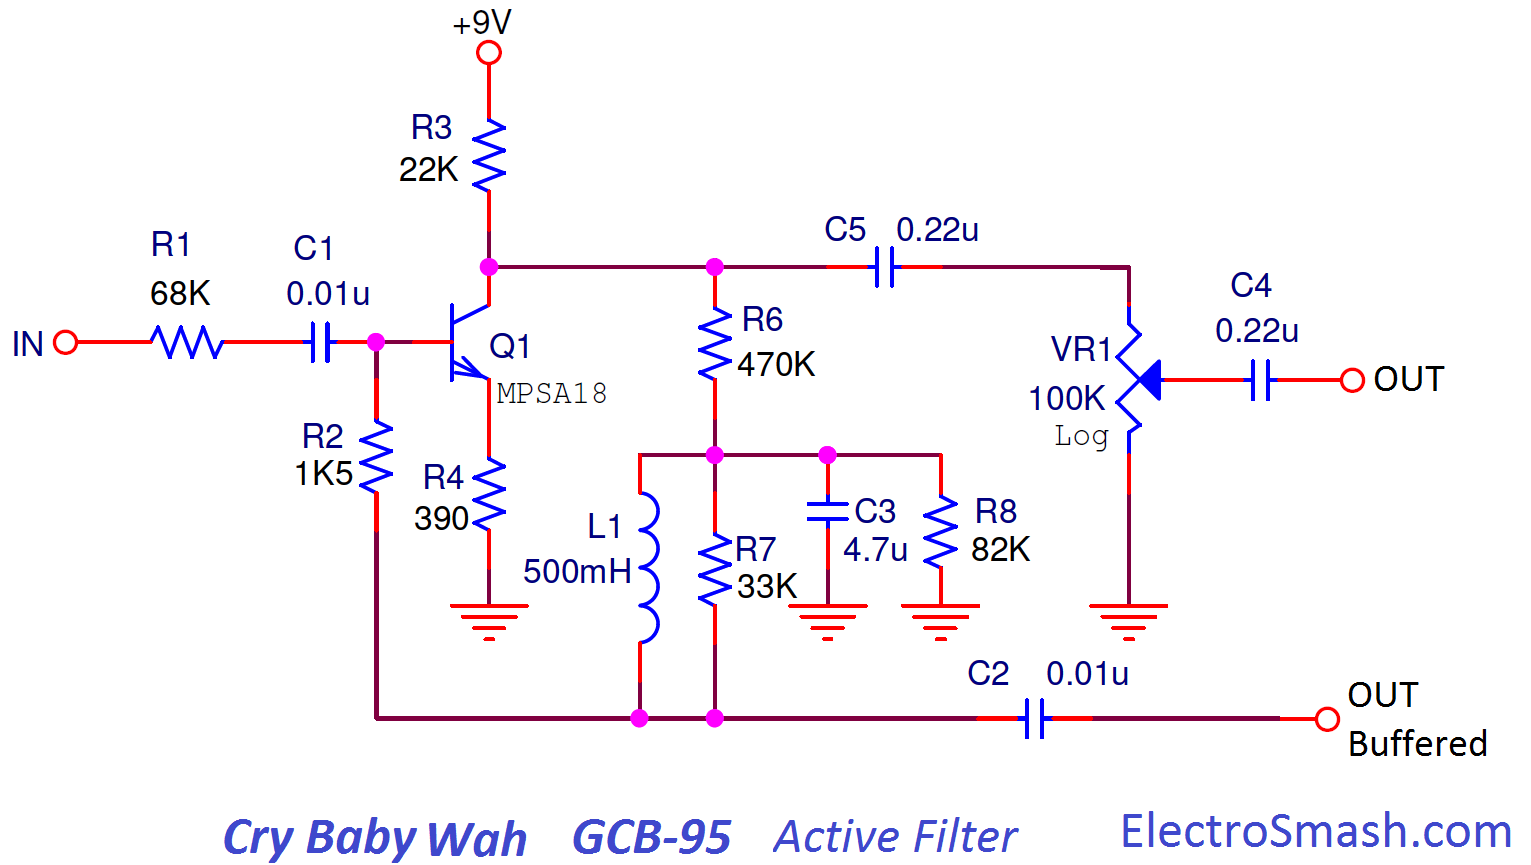 Electrosmash Dunlop Crybaby Gcb 95 Circuit Analysis Organ Schematic Diagrams On Guitar Amp Wiring Diagram Layout Active Filter